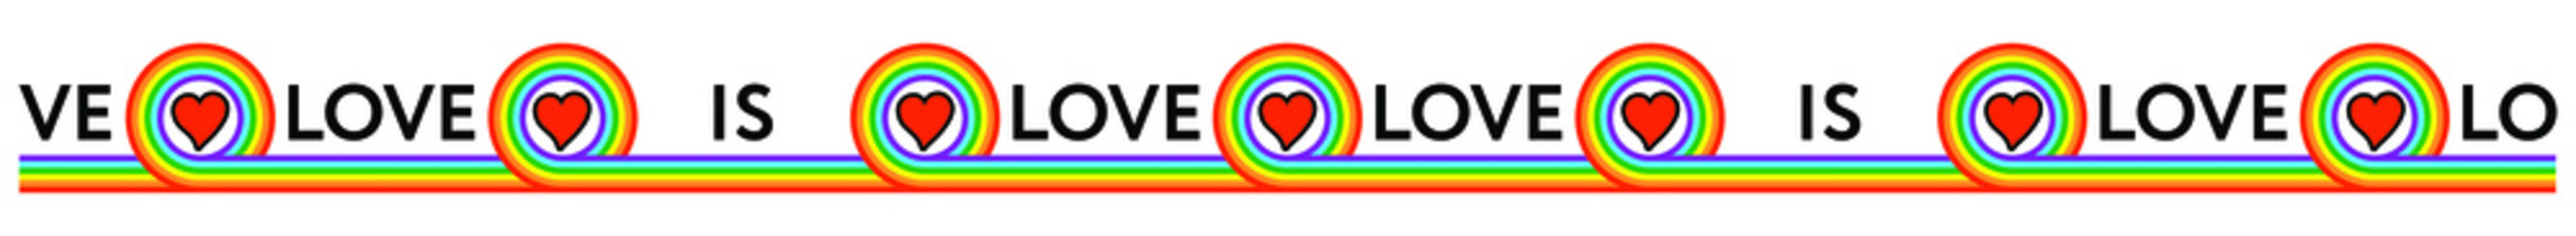 Love is love, 14 february, valentines day. Happy Pride day. Gay rainbow LGBT flag background. Homosexual texture. Banner, frame. It is located below on a white sheet of paper. Place for text.